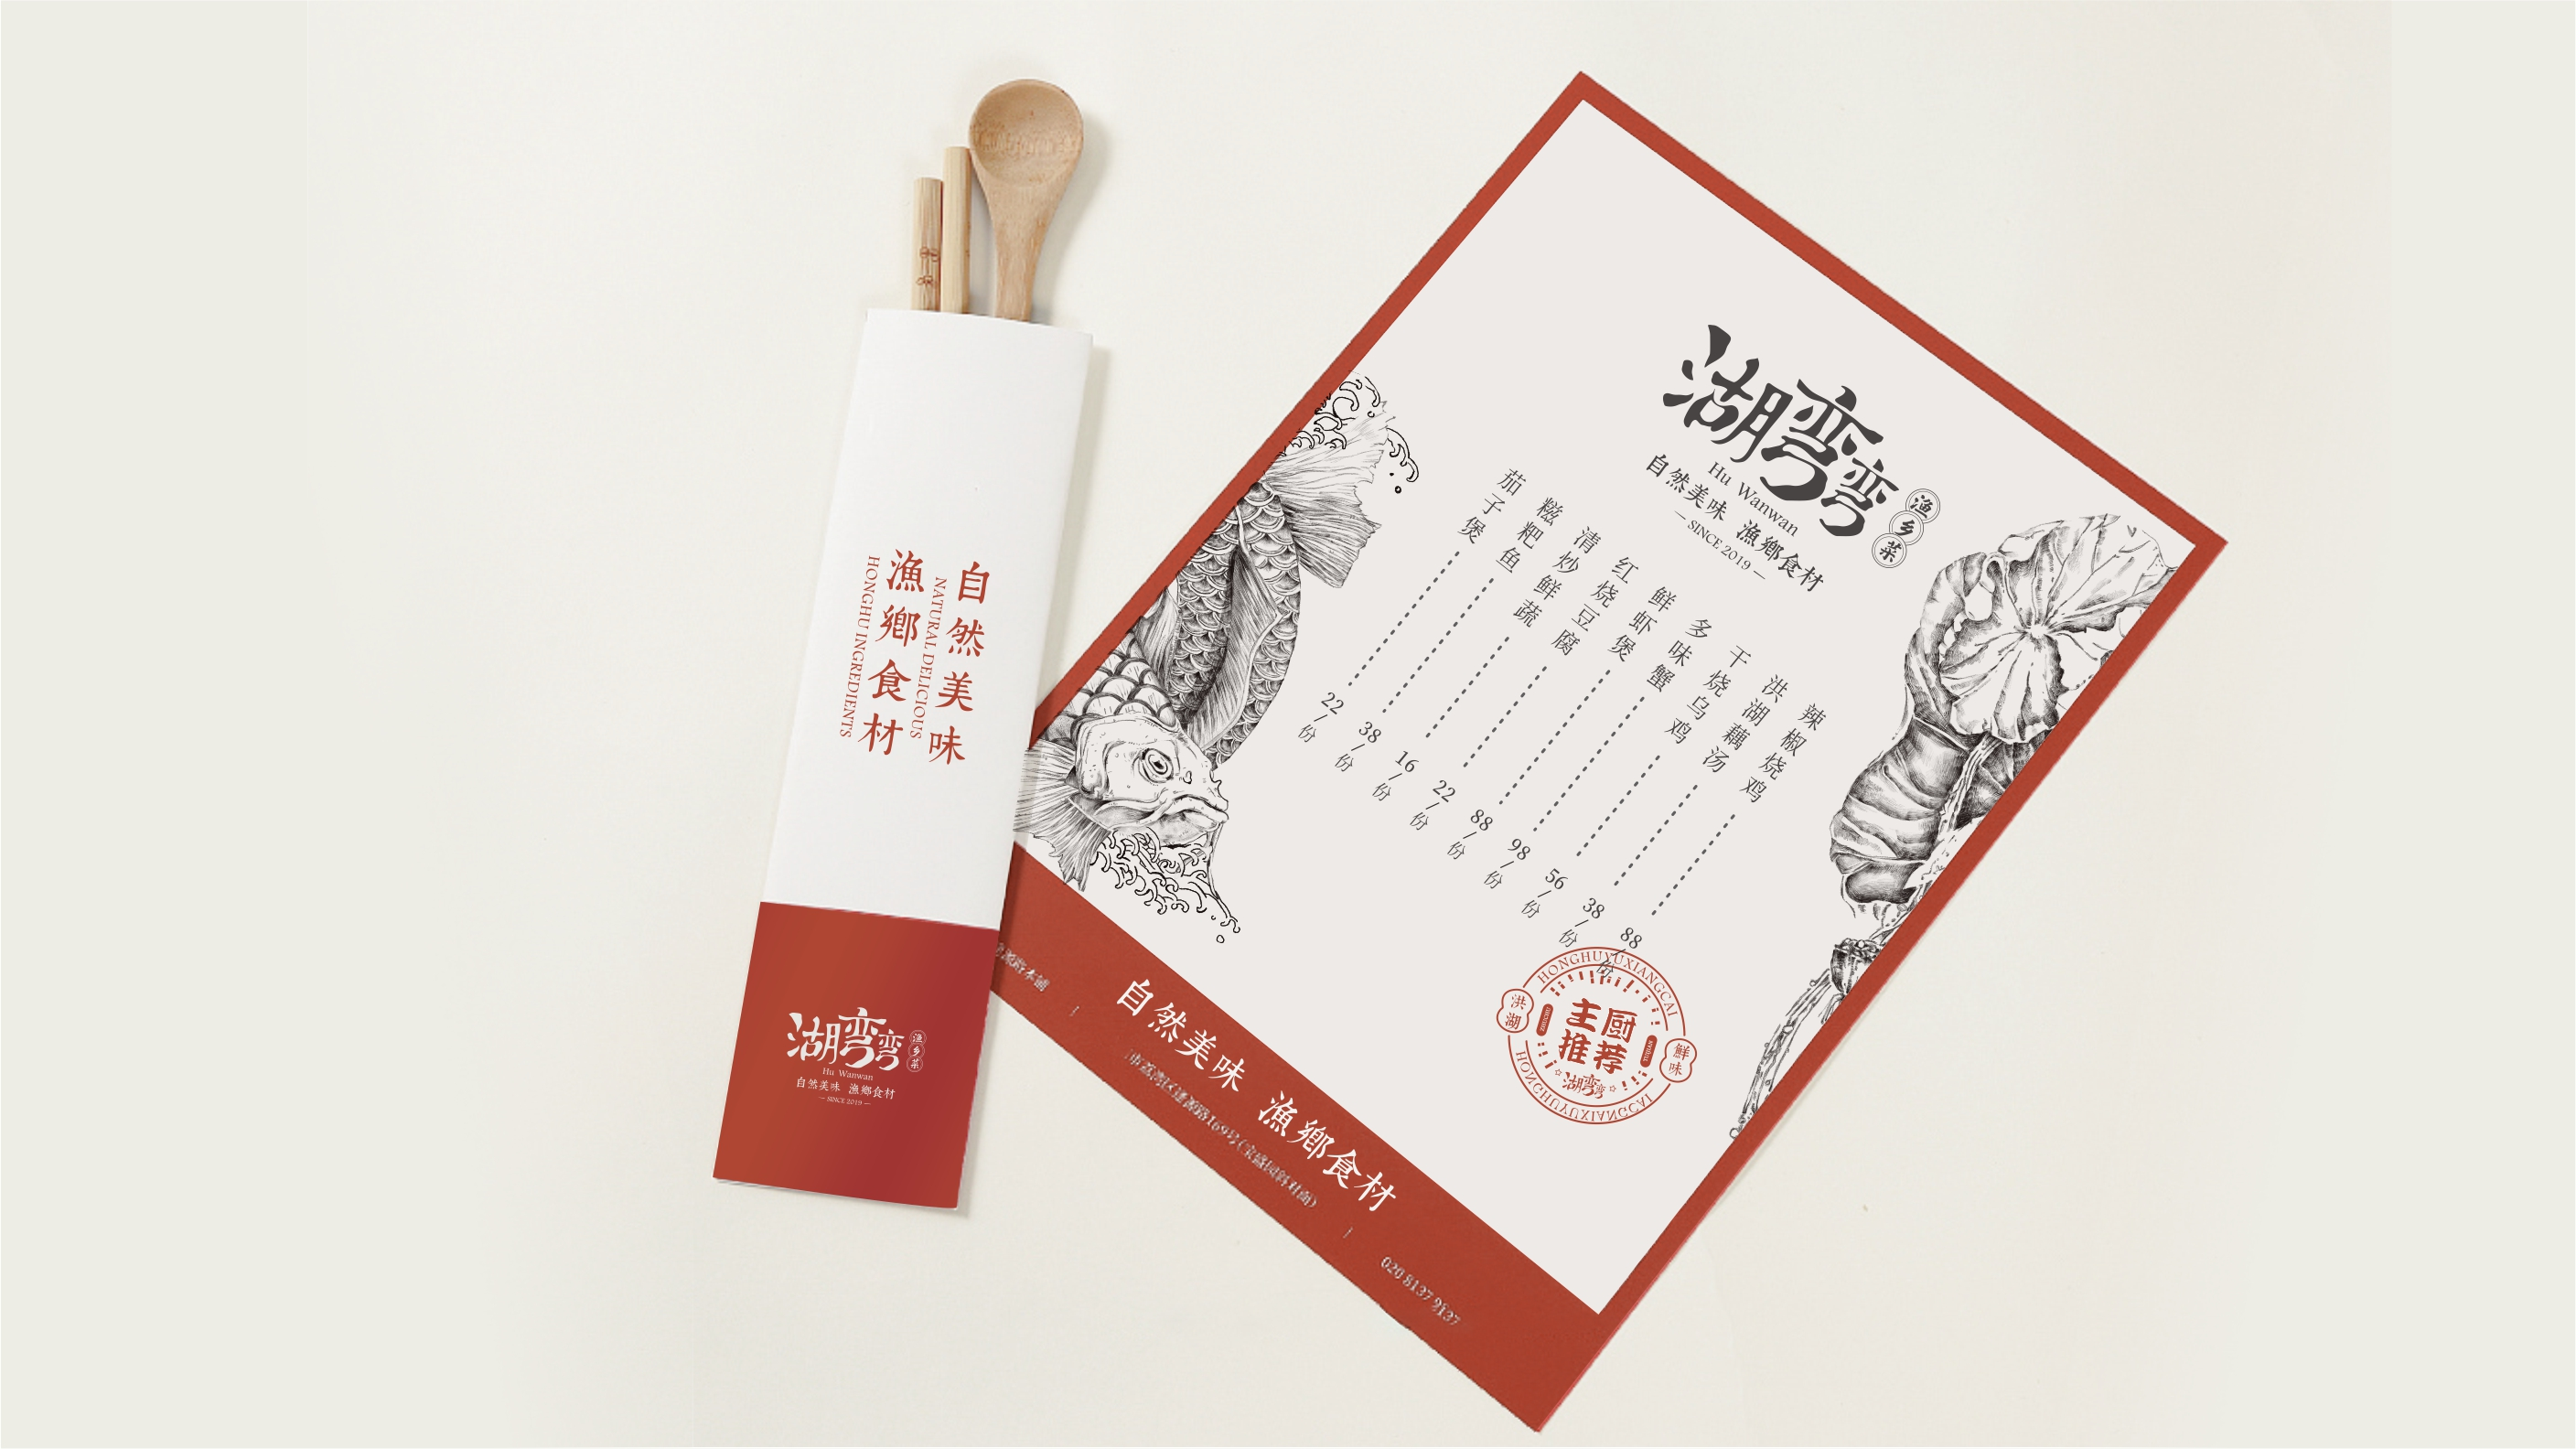 18P Restaurant Design Scheme Containing Chinese Culture